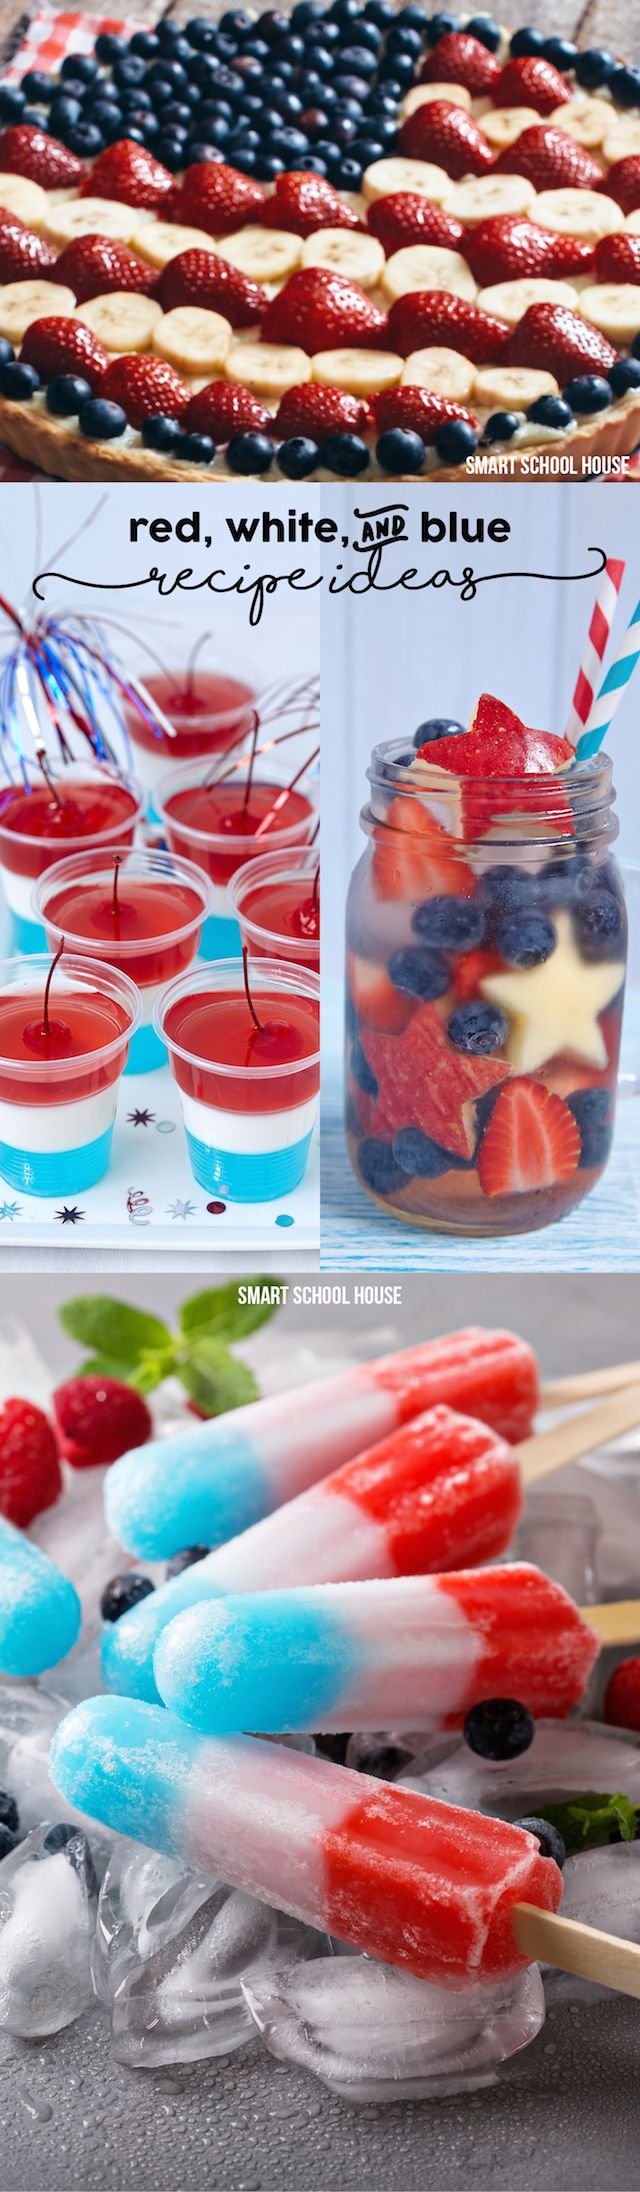 Red, white, and blue recipe ideas for the 4th of July! Desserts and party ideas to save.